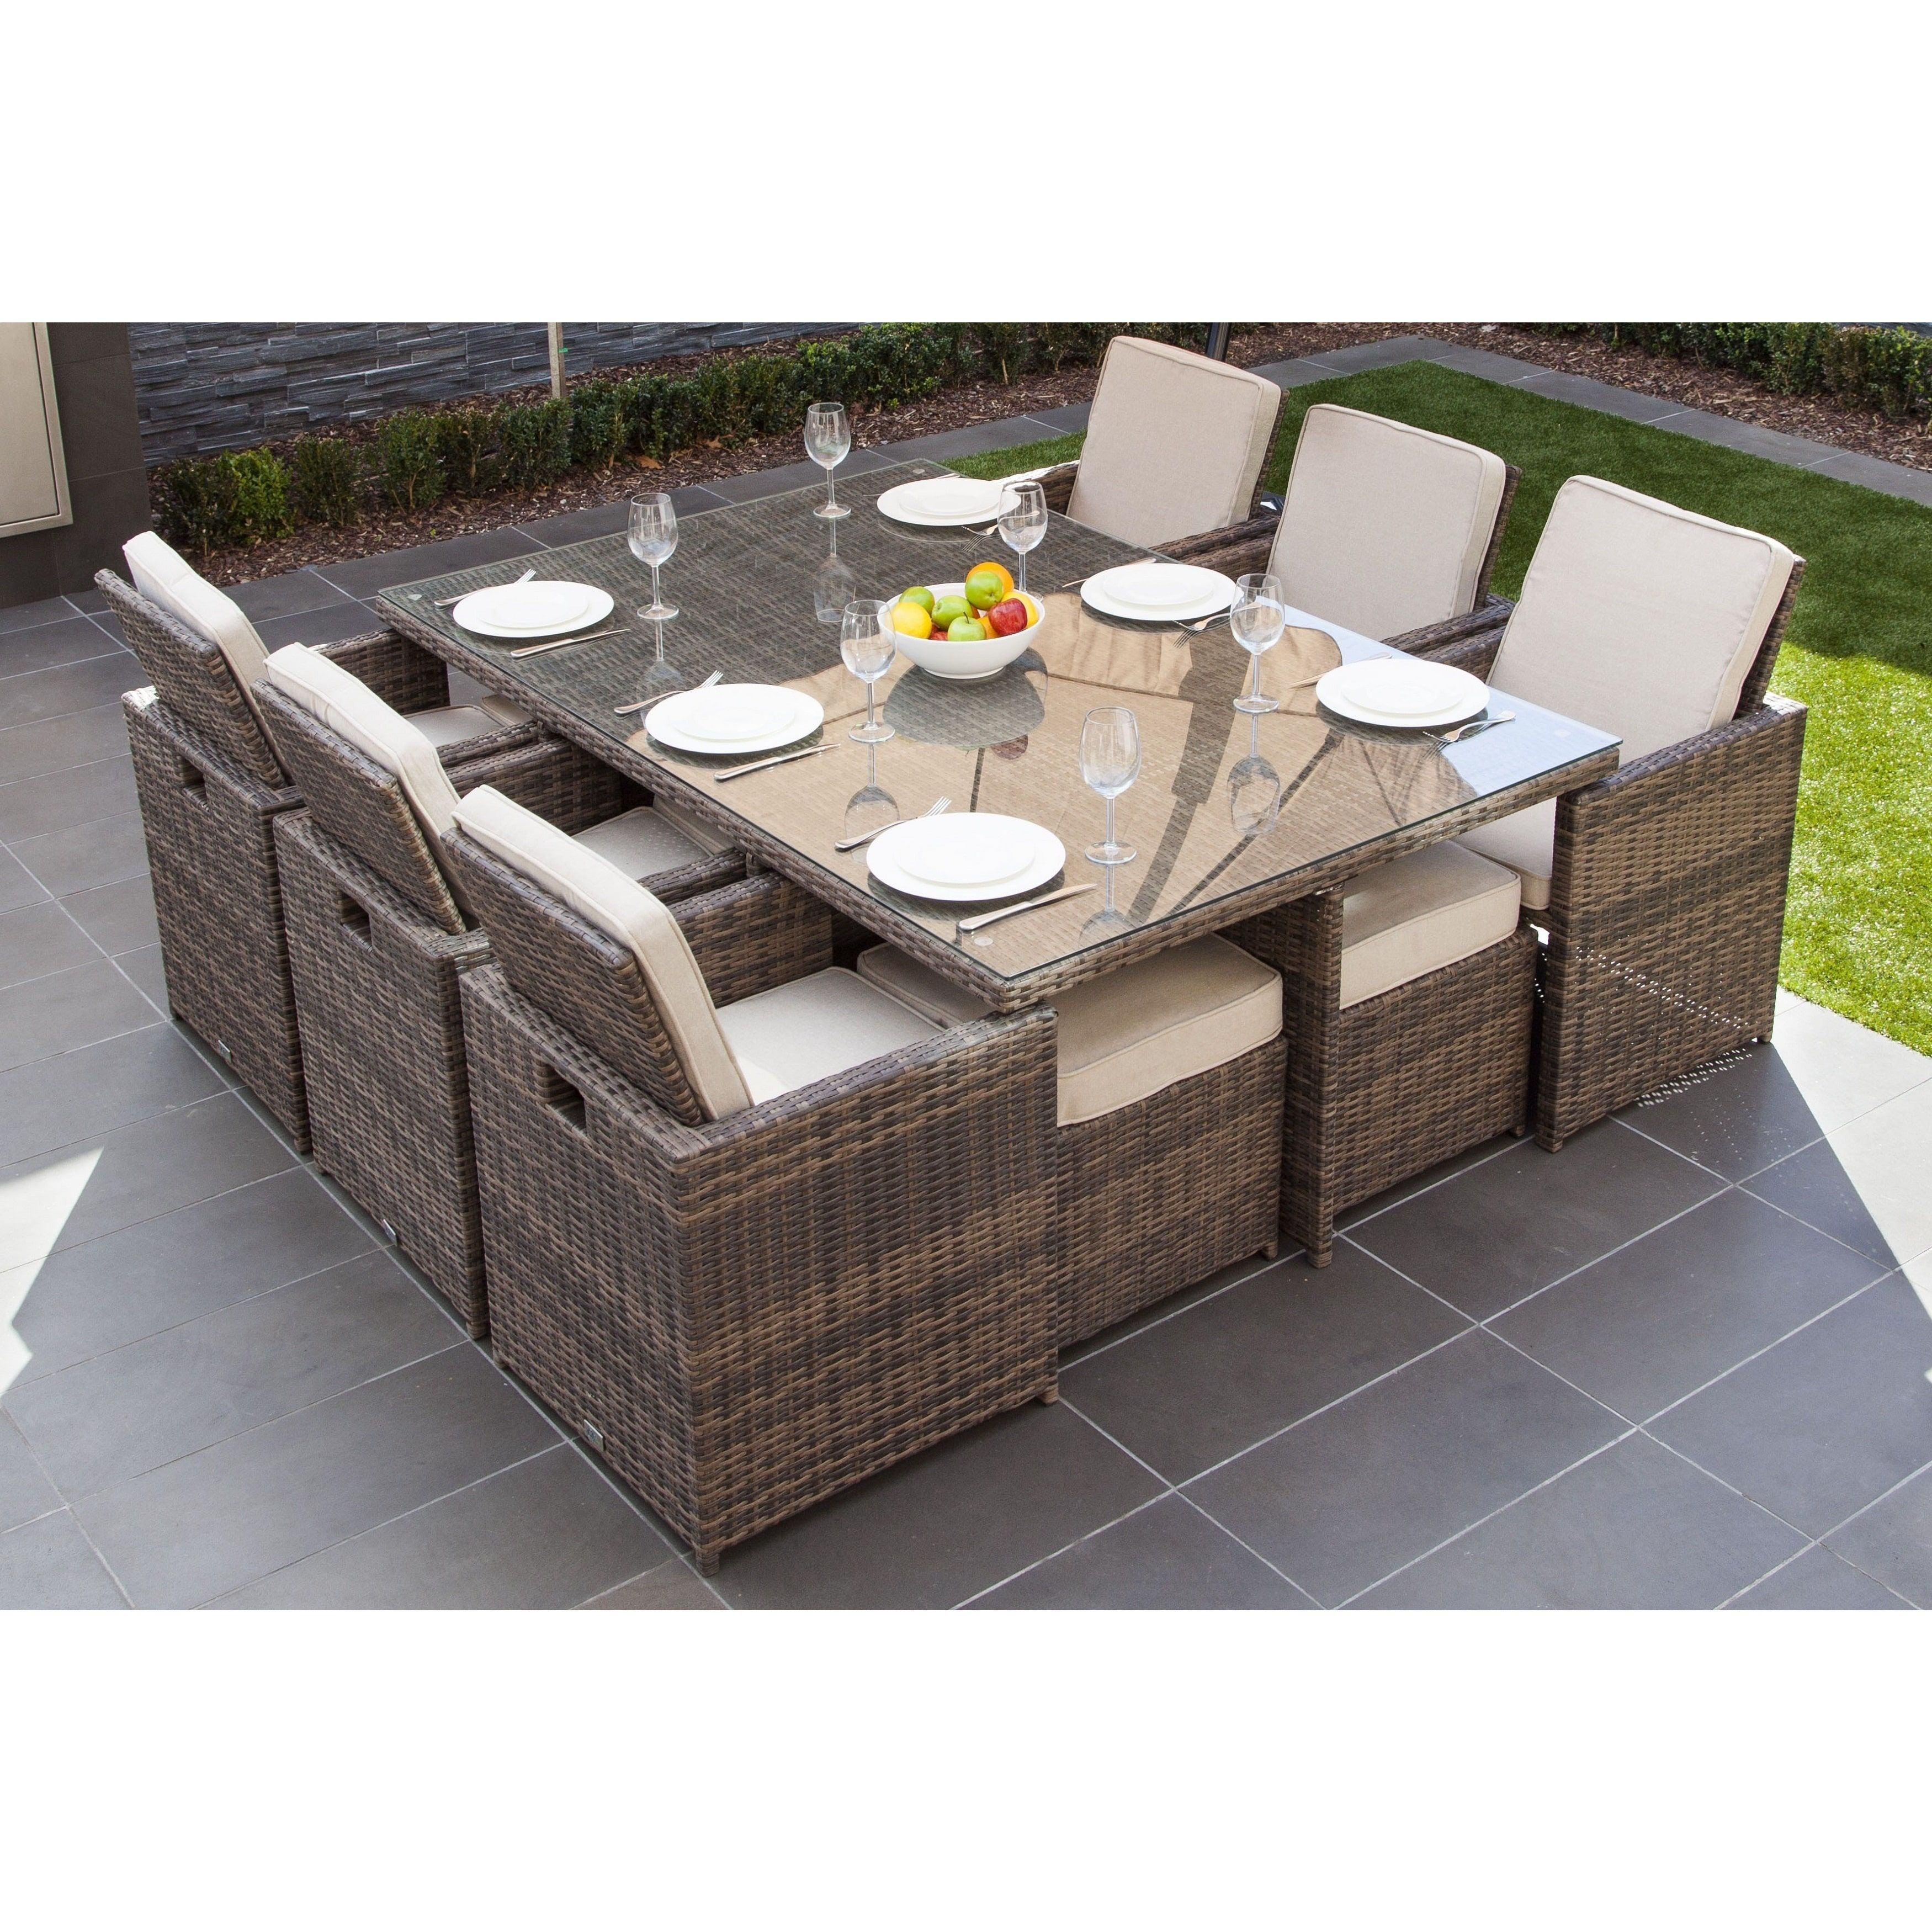 Malta 11 piece outdoor wicker dining table and cushion set by direct wicker brown dinning set beige color size 11 piece sets patio furniture aluminum